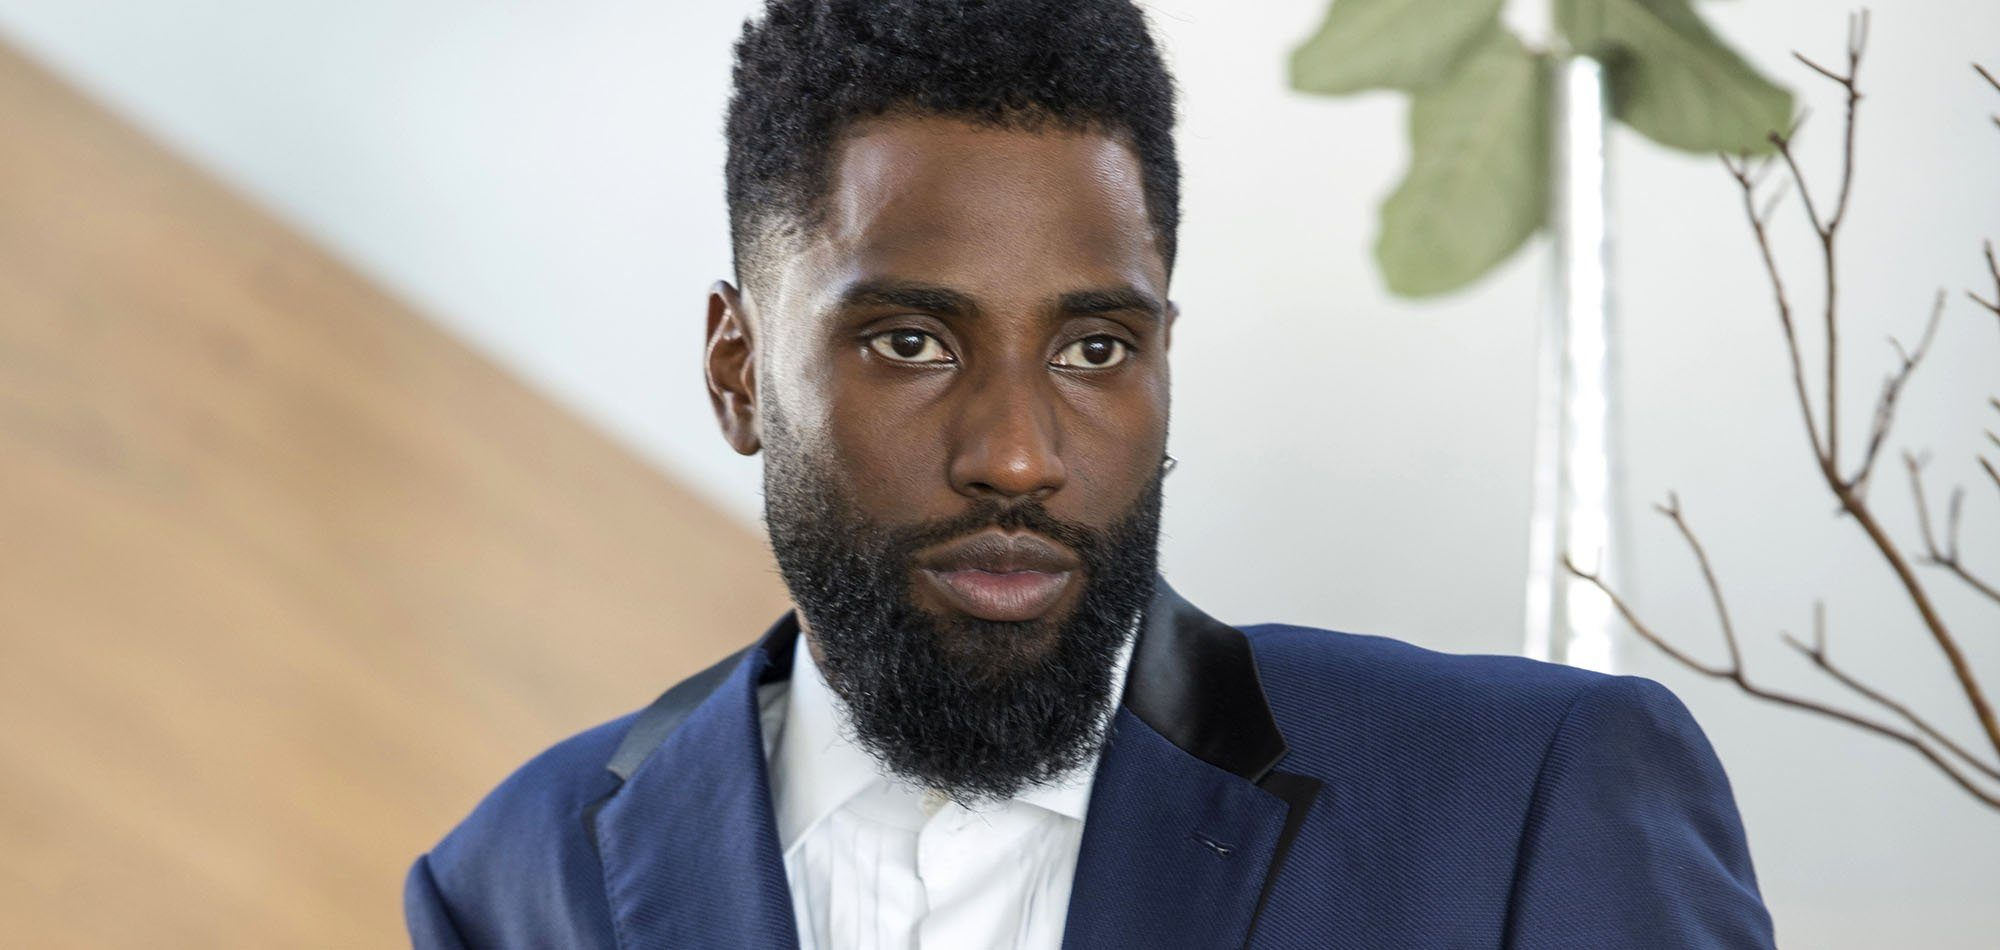 Analisando as Barbas do ator John David Washington